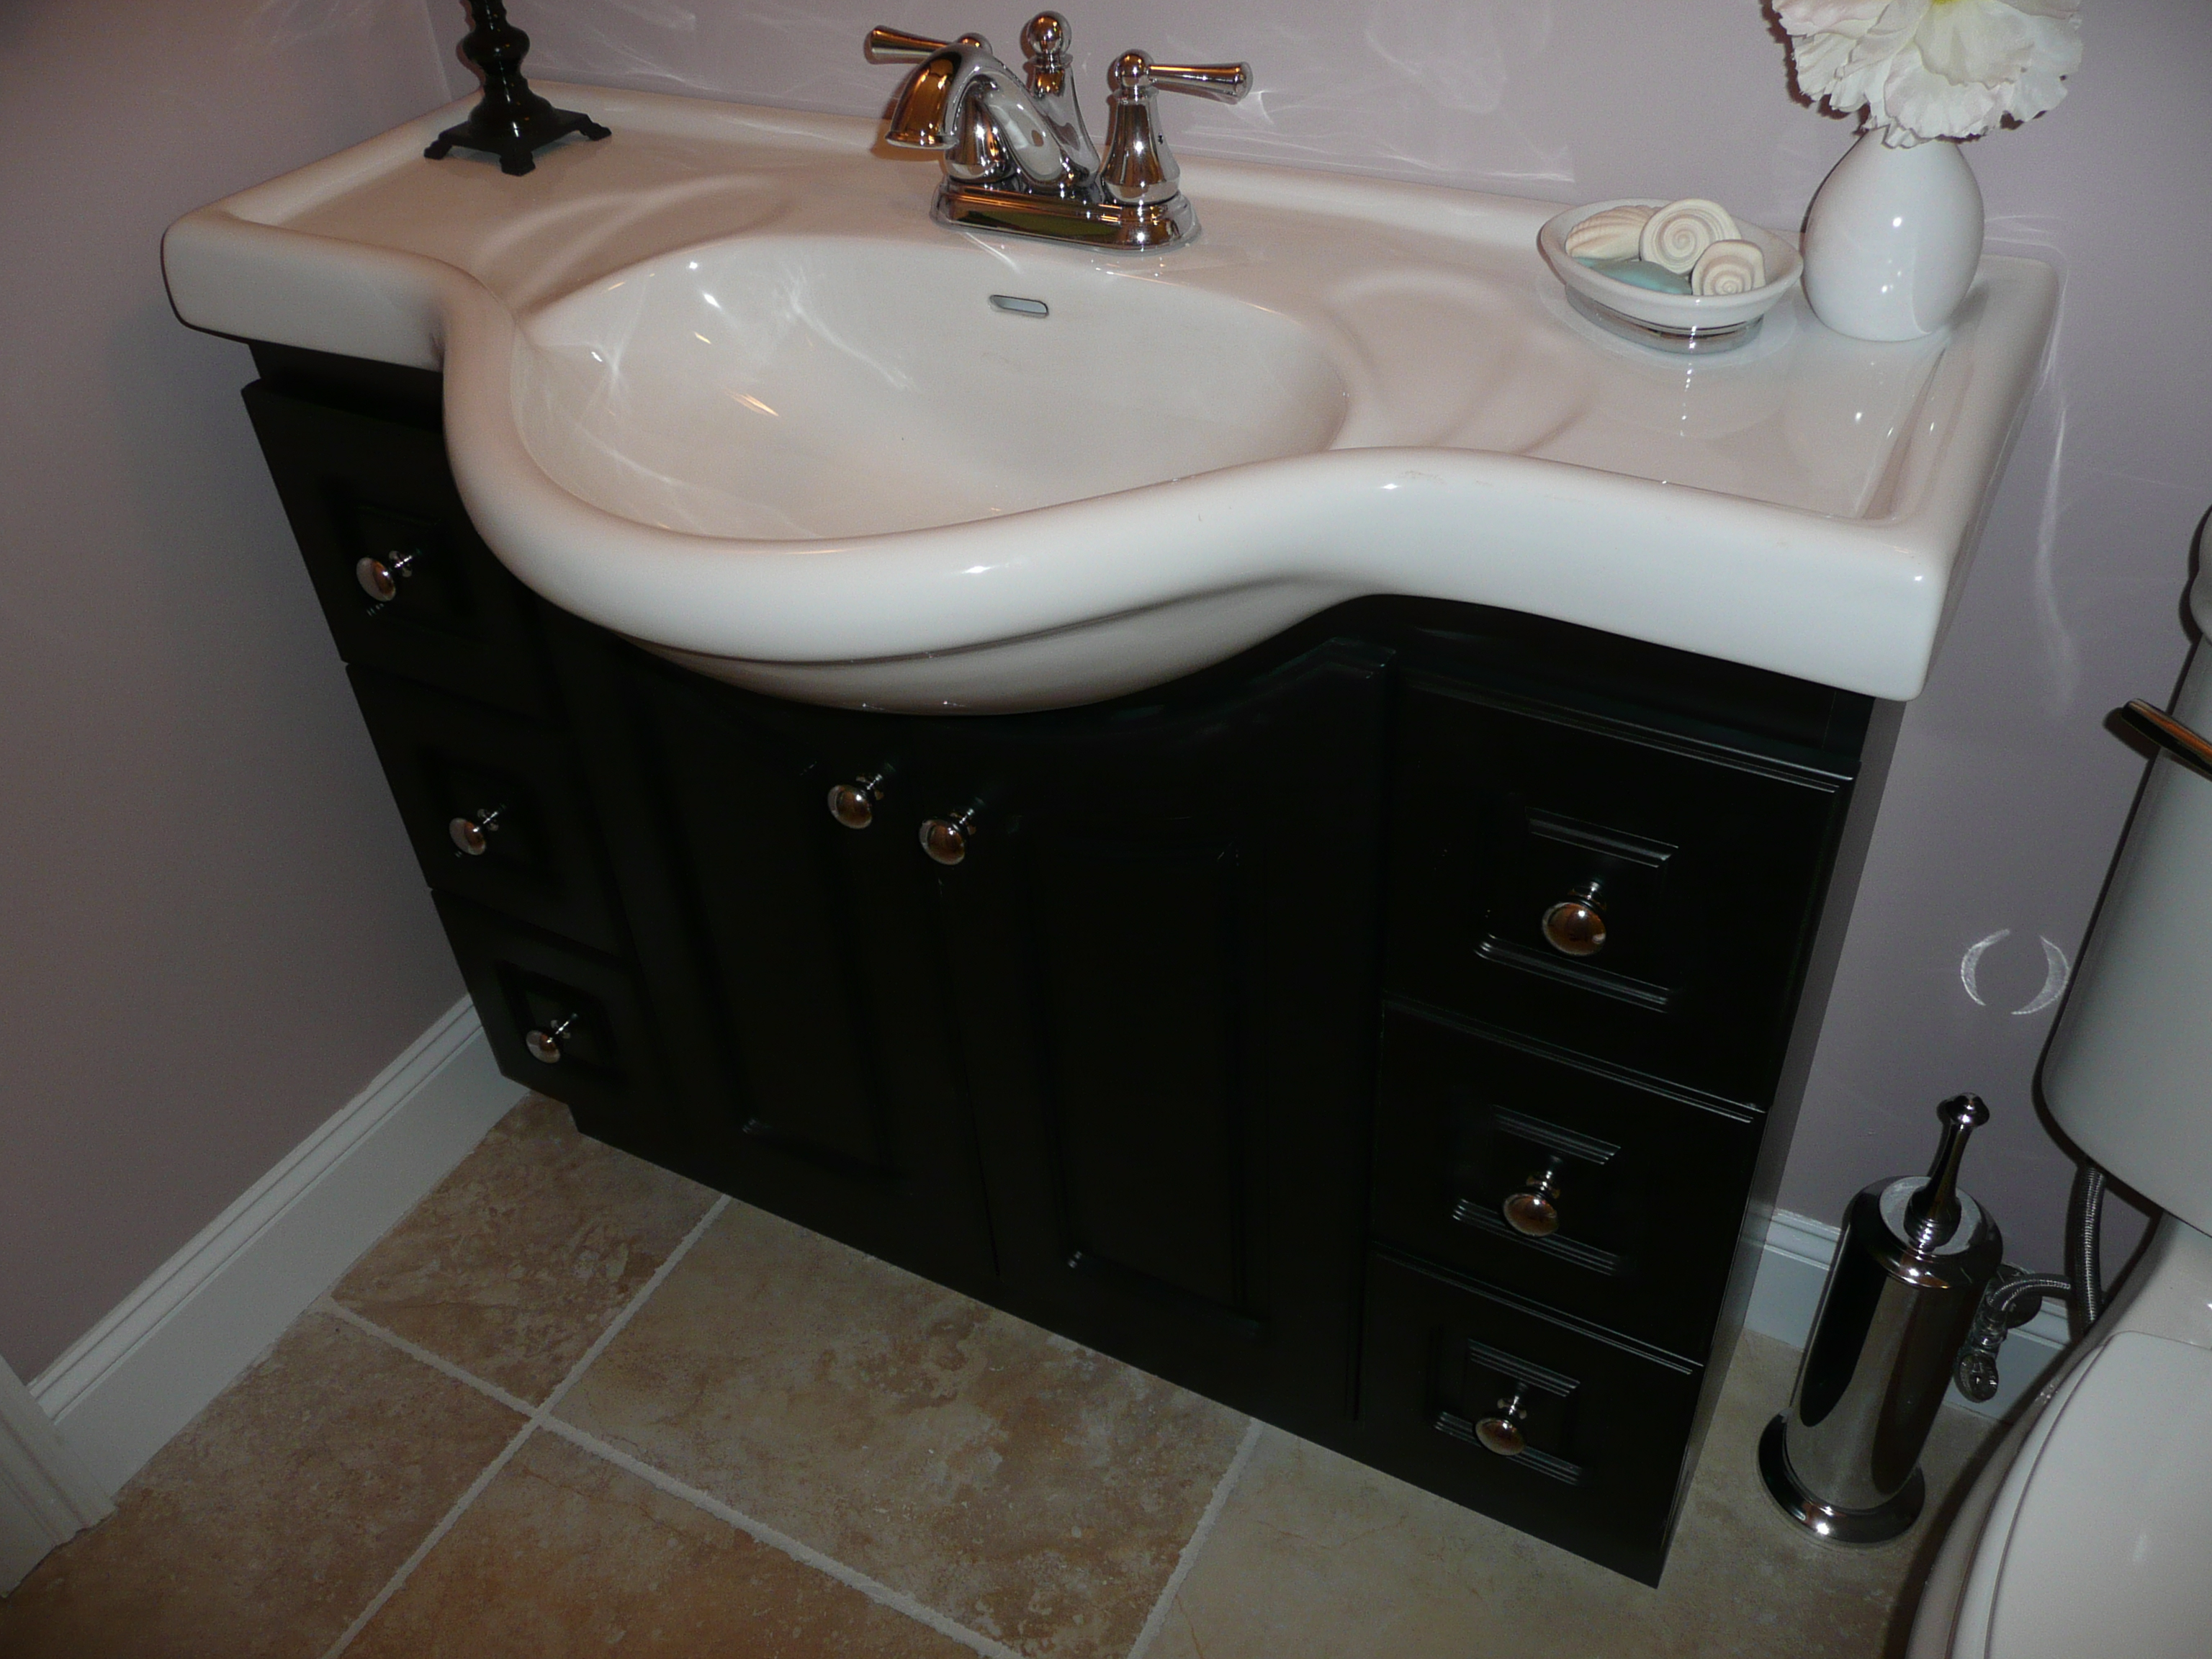 A New Euro Style Sink And Counter Base Will Enhance Small Bath Utilizing More Floor